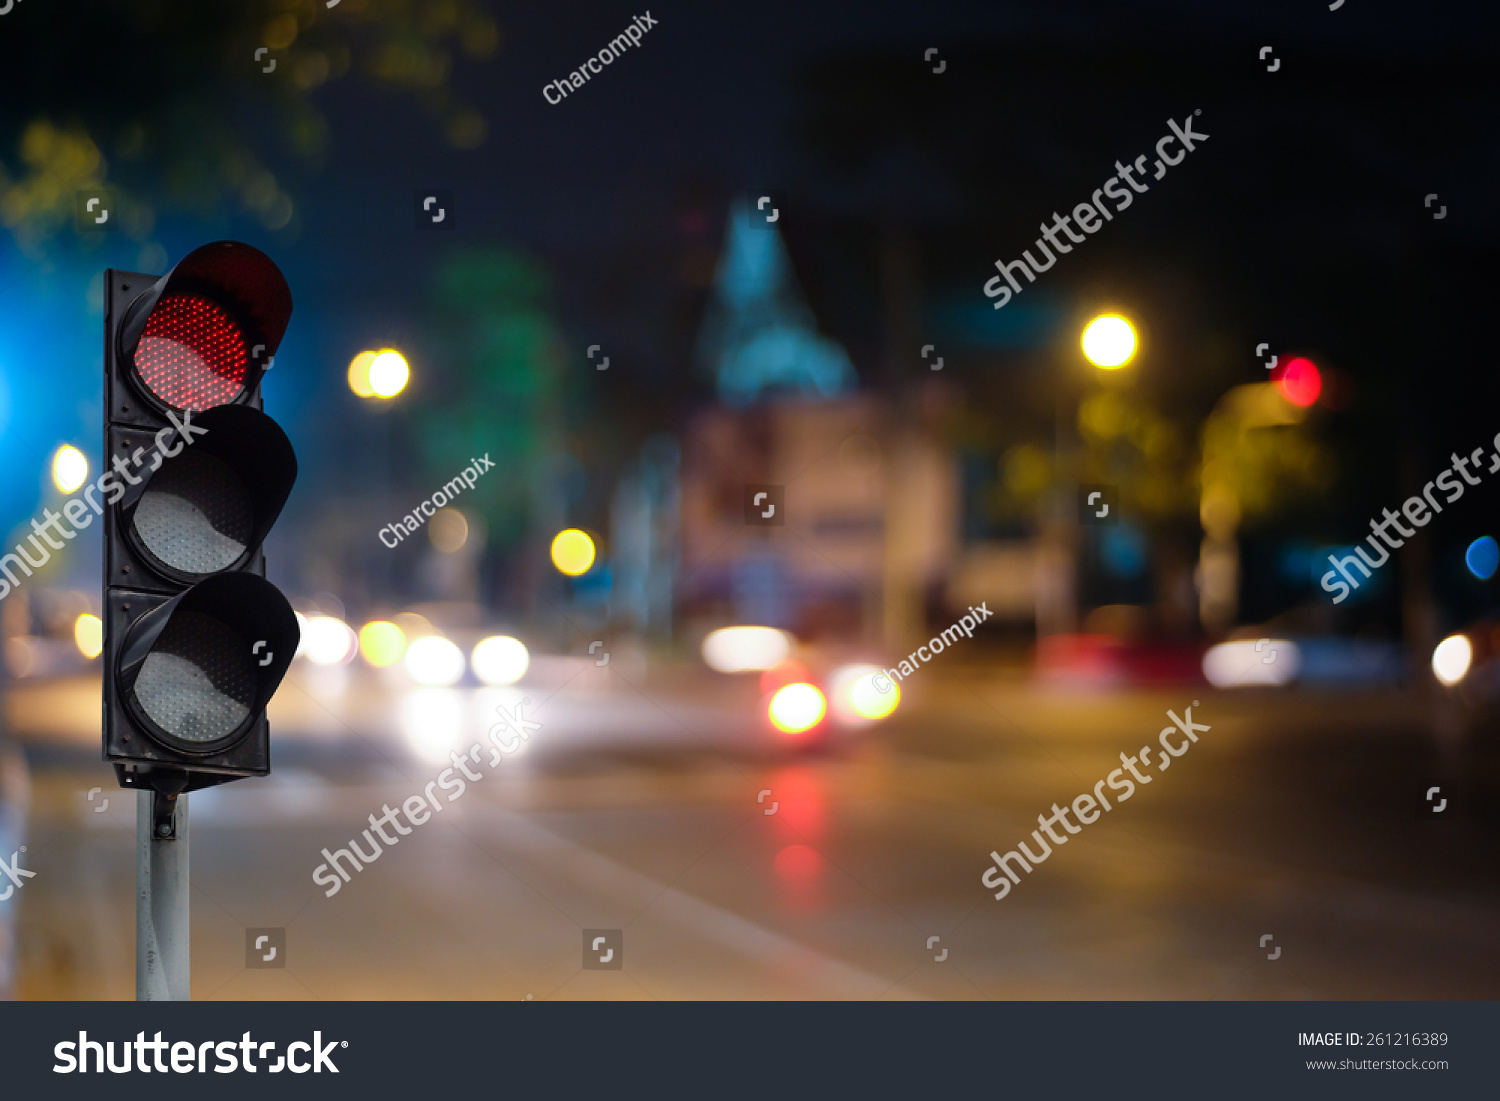 Red Traffic Light On Road Night Stock Photo 261216389 - Shutterstock for Traffic Light On Road At Night  117dqh